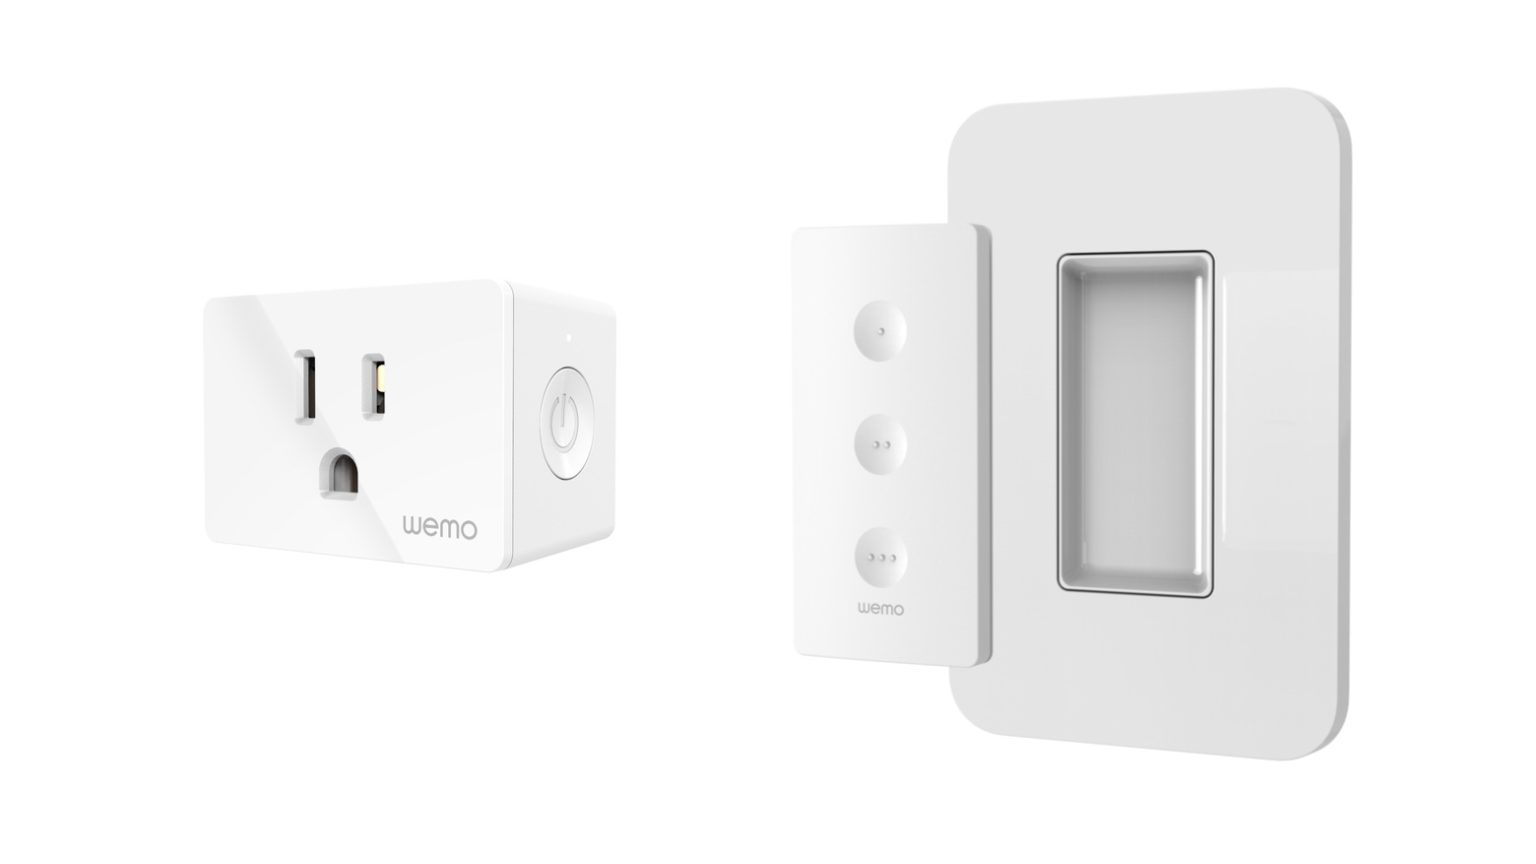 The Wemo WiFi Smart Plug both support HomeKit